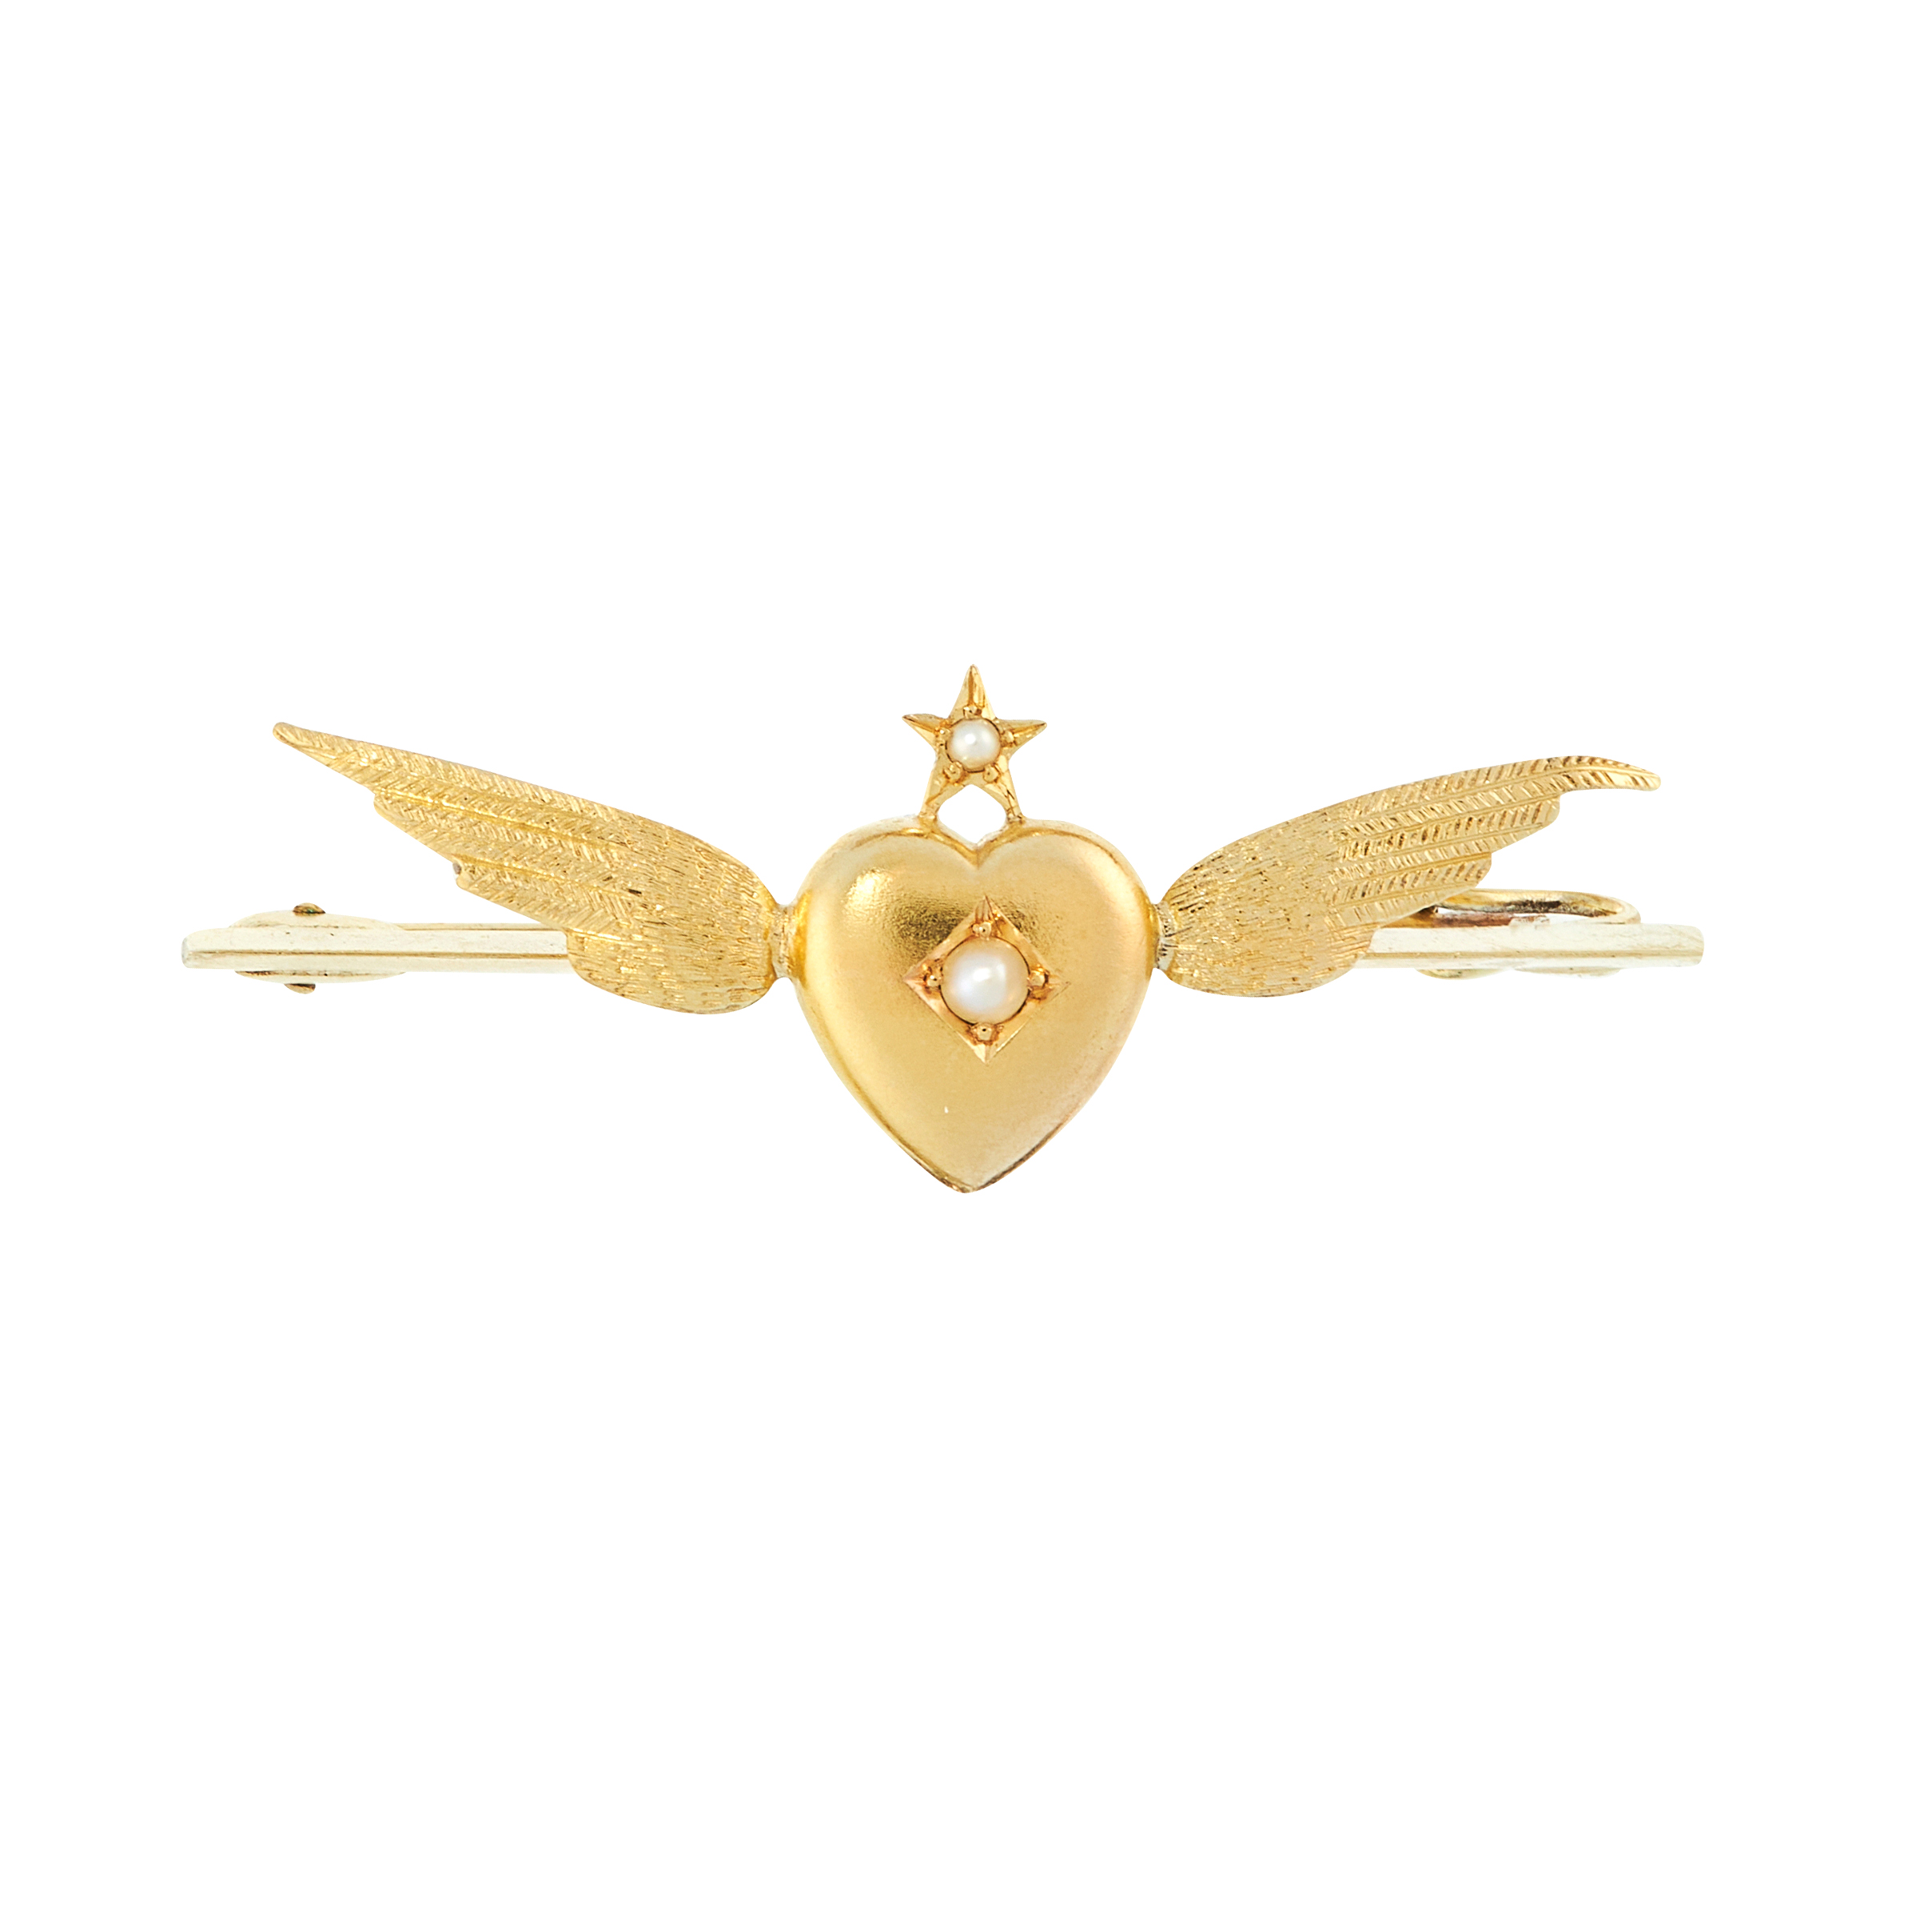 AN ANTIQUE PEARL BROOCH, CIRCA 1900 in 15ct yellow gold, designed as a heart surmounted by a star,